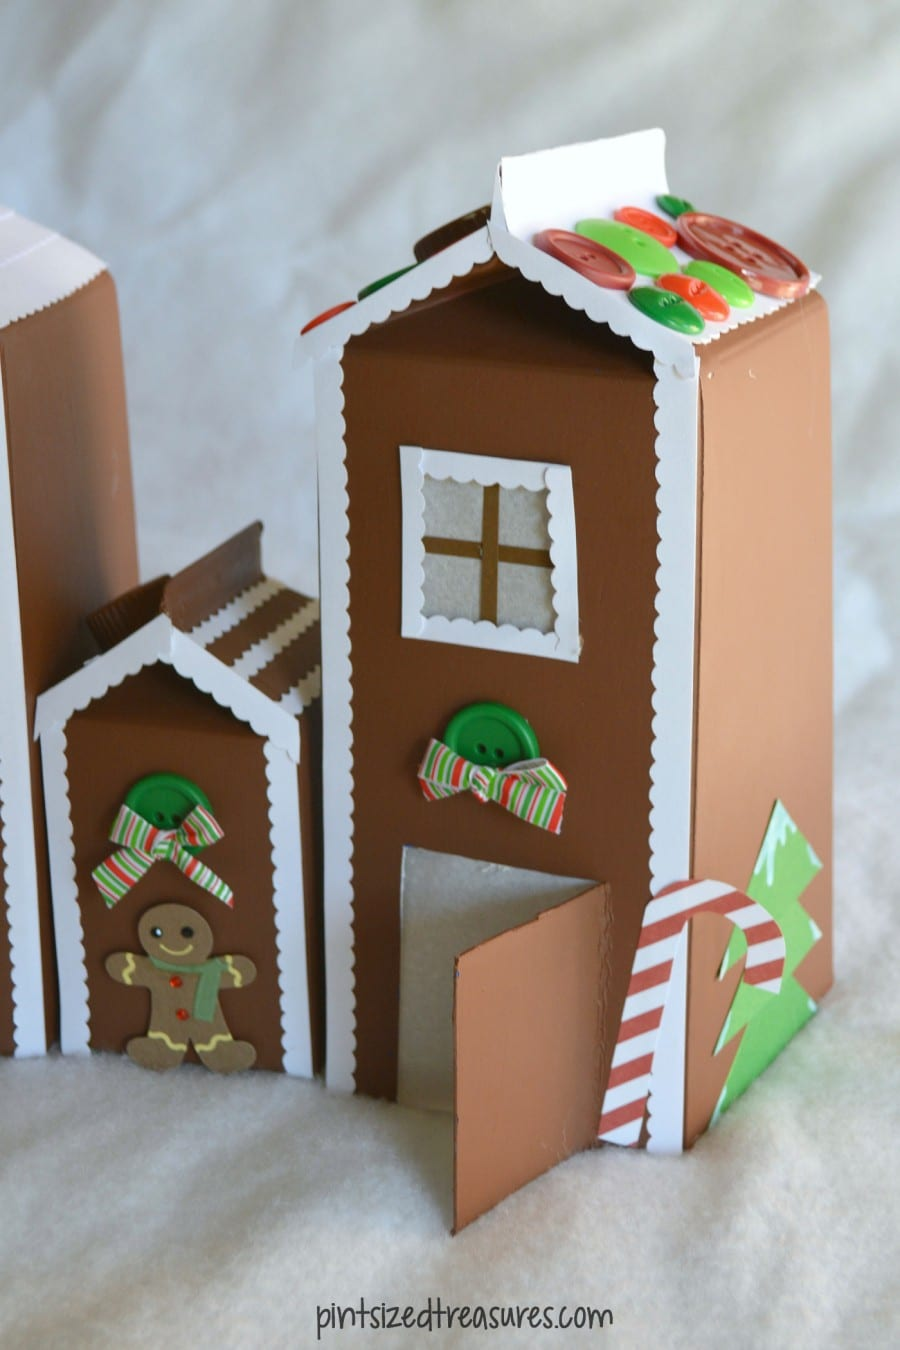 recycled milk carton gingerbread house craft